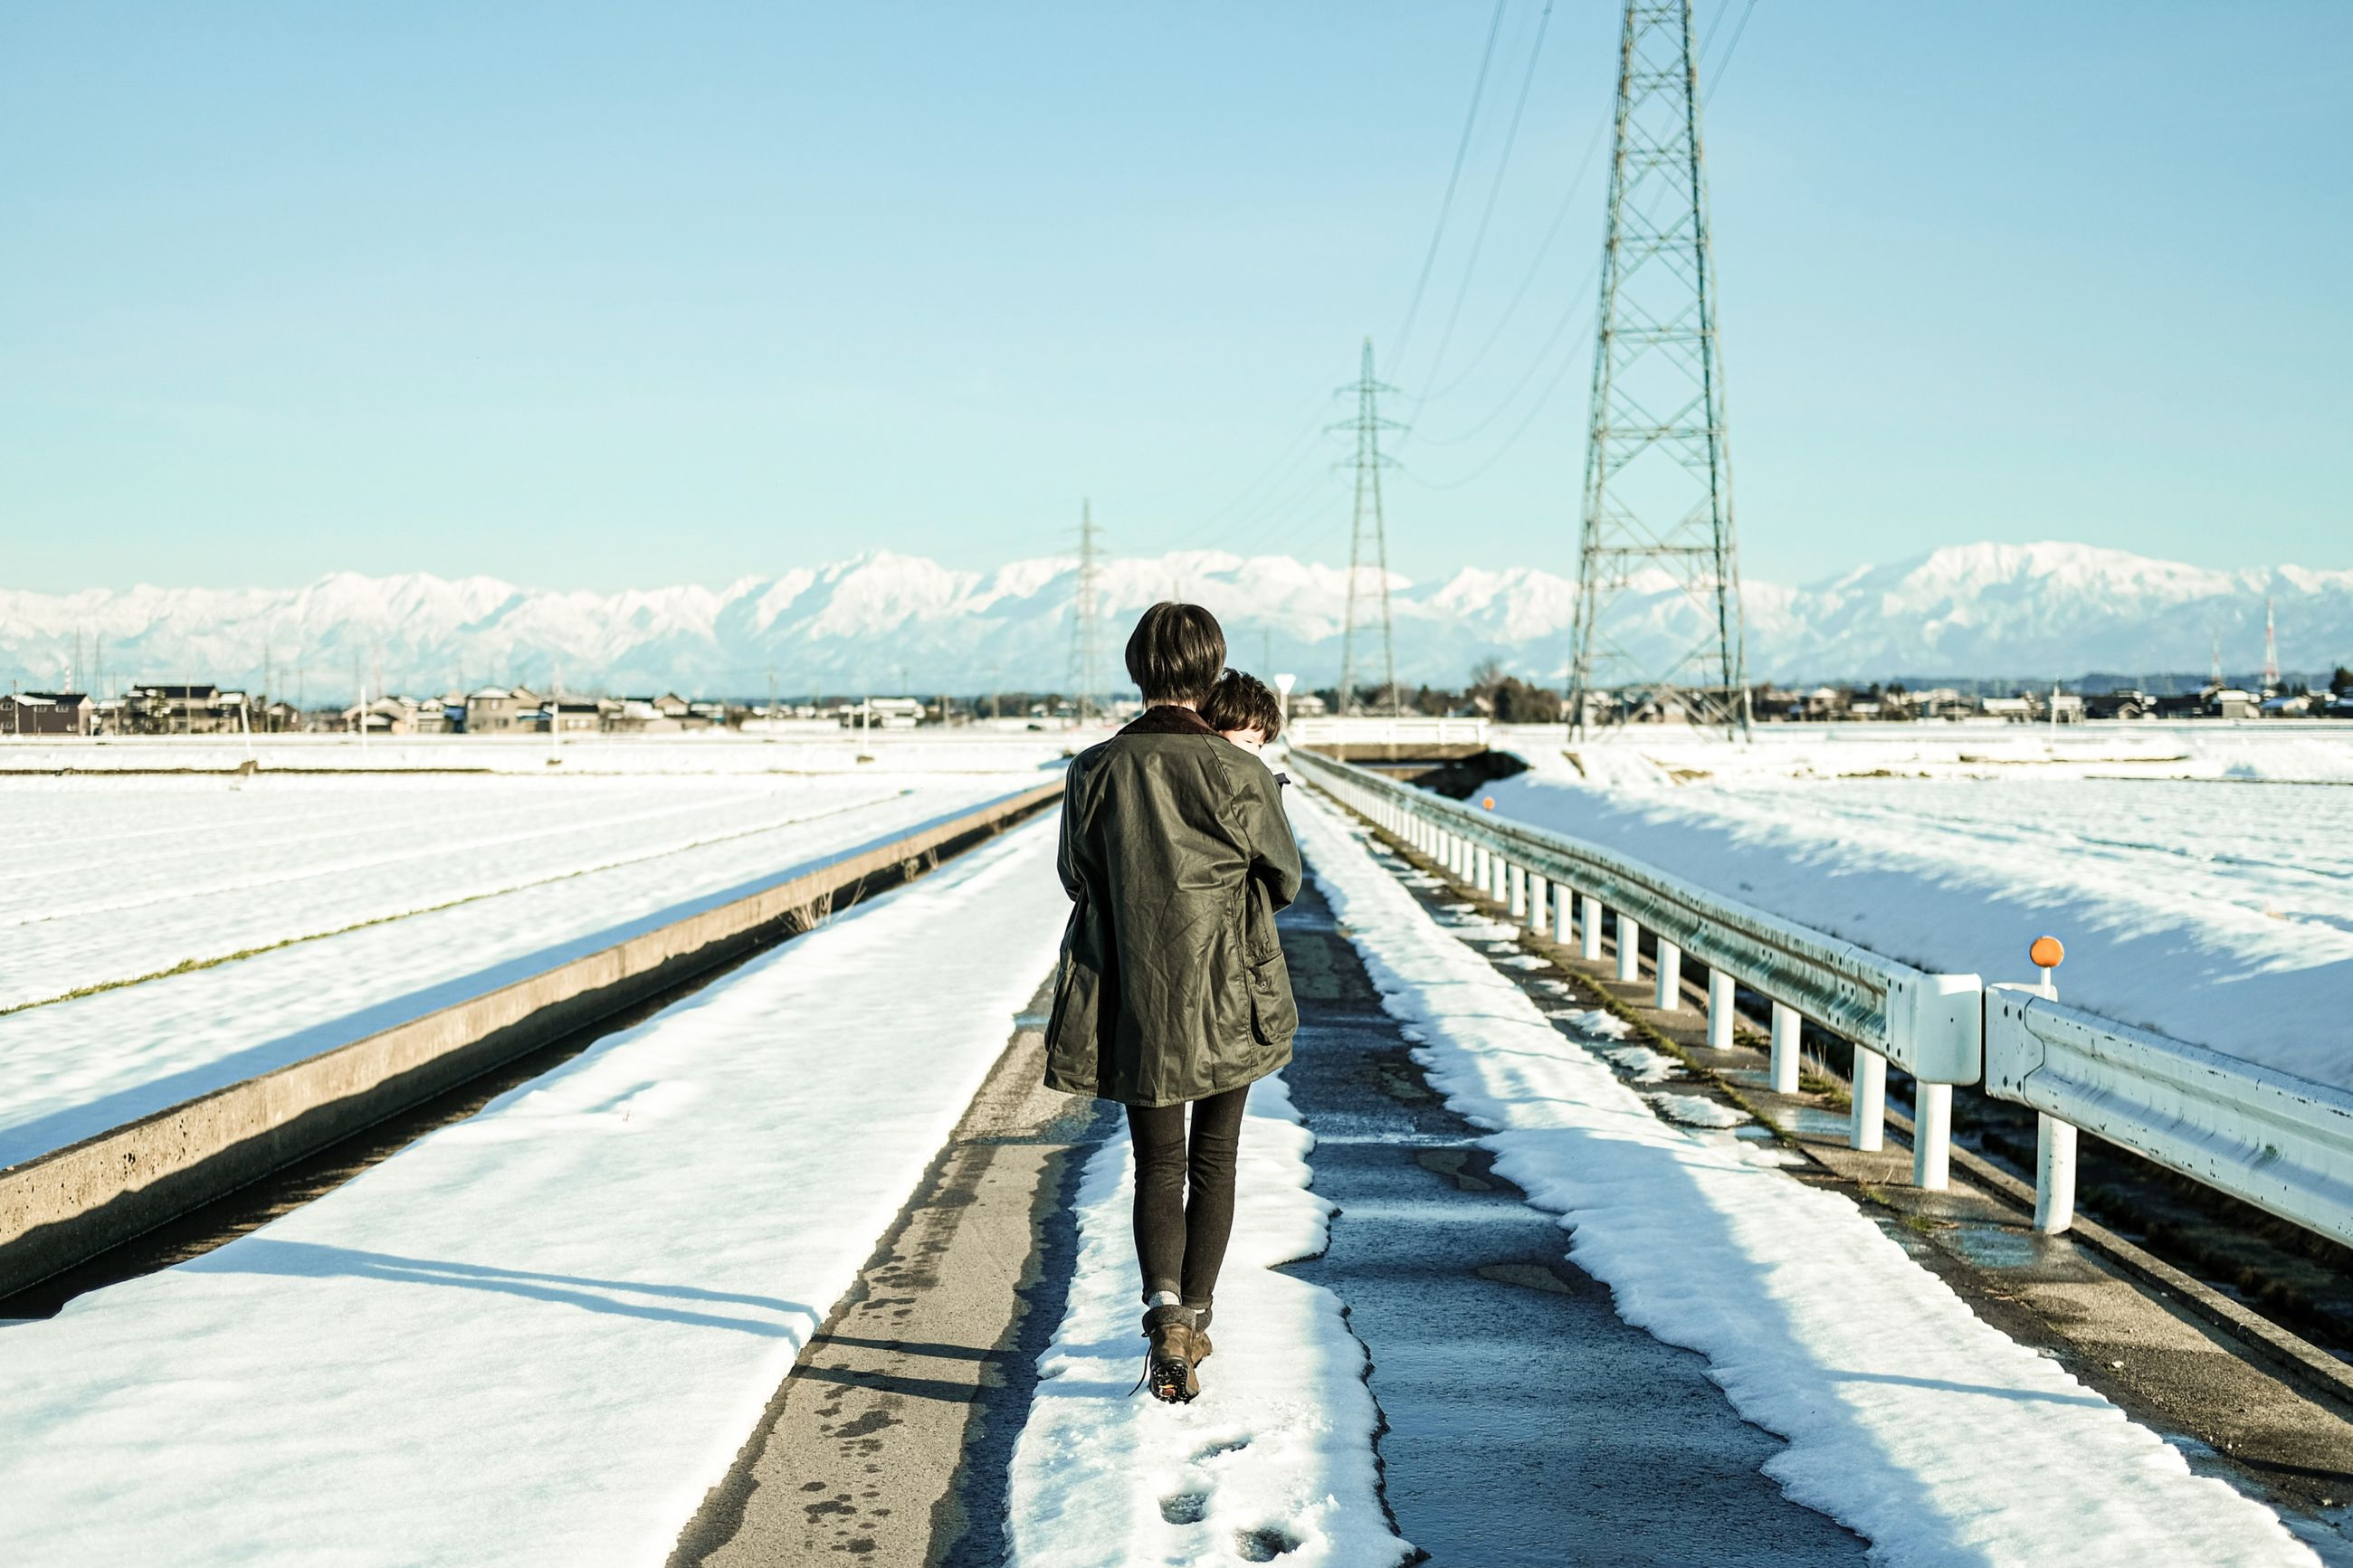 rear view, winter, cold temperature, snow, transportation, sky, nature, real people, one person, day, electricity, sunlight, clothing, full length, connection, electricity pylon, rail transportation, cable, track, outdoors, warm clothing, power supply